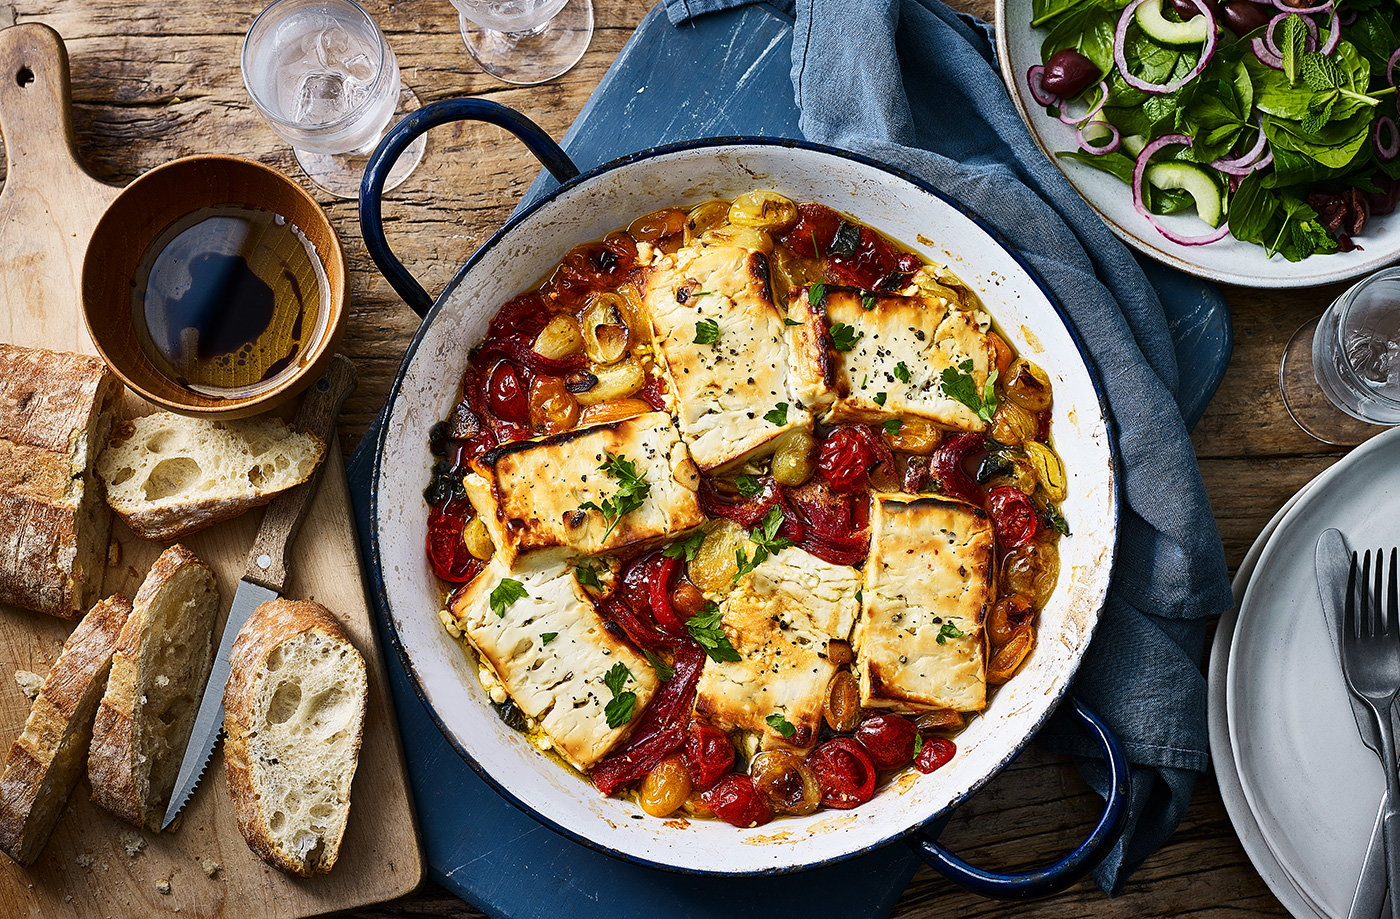 Baked feta and tomatoes with cucumber salad recipe